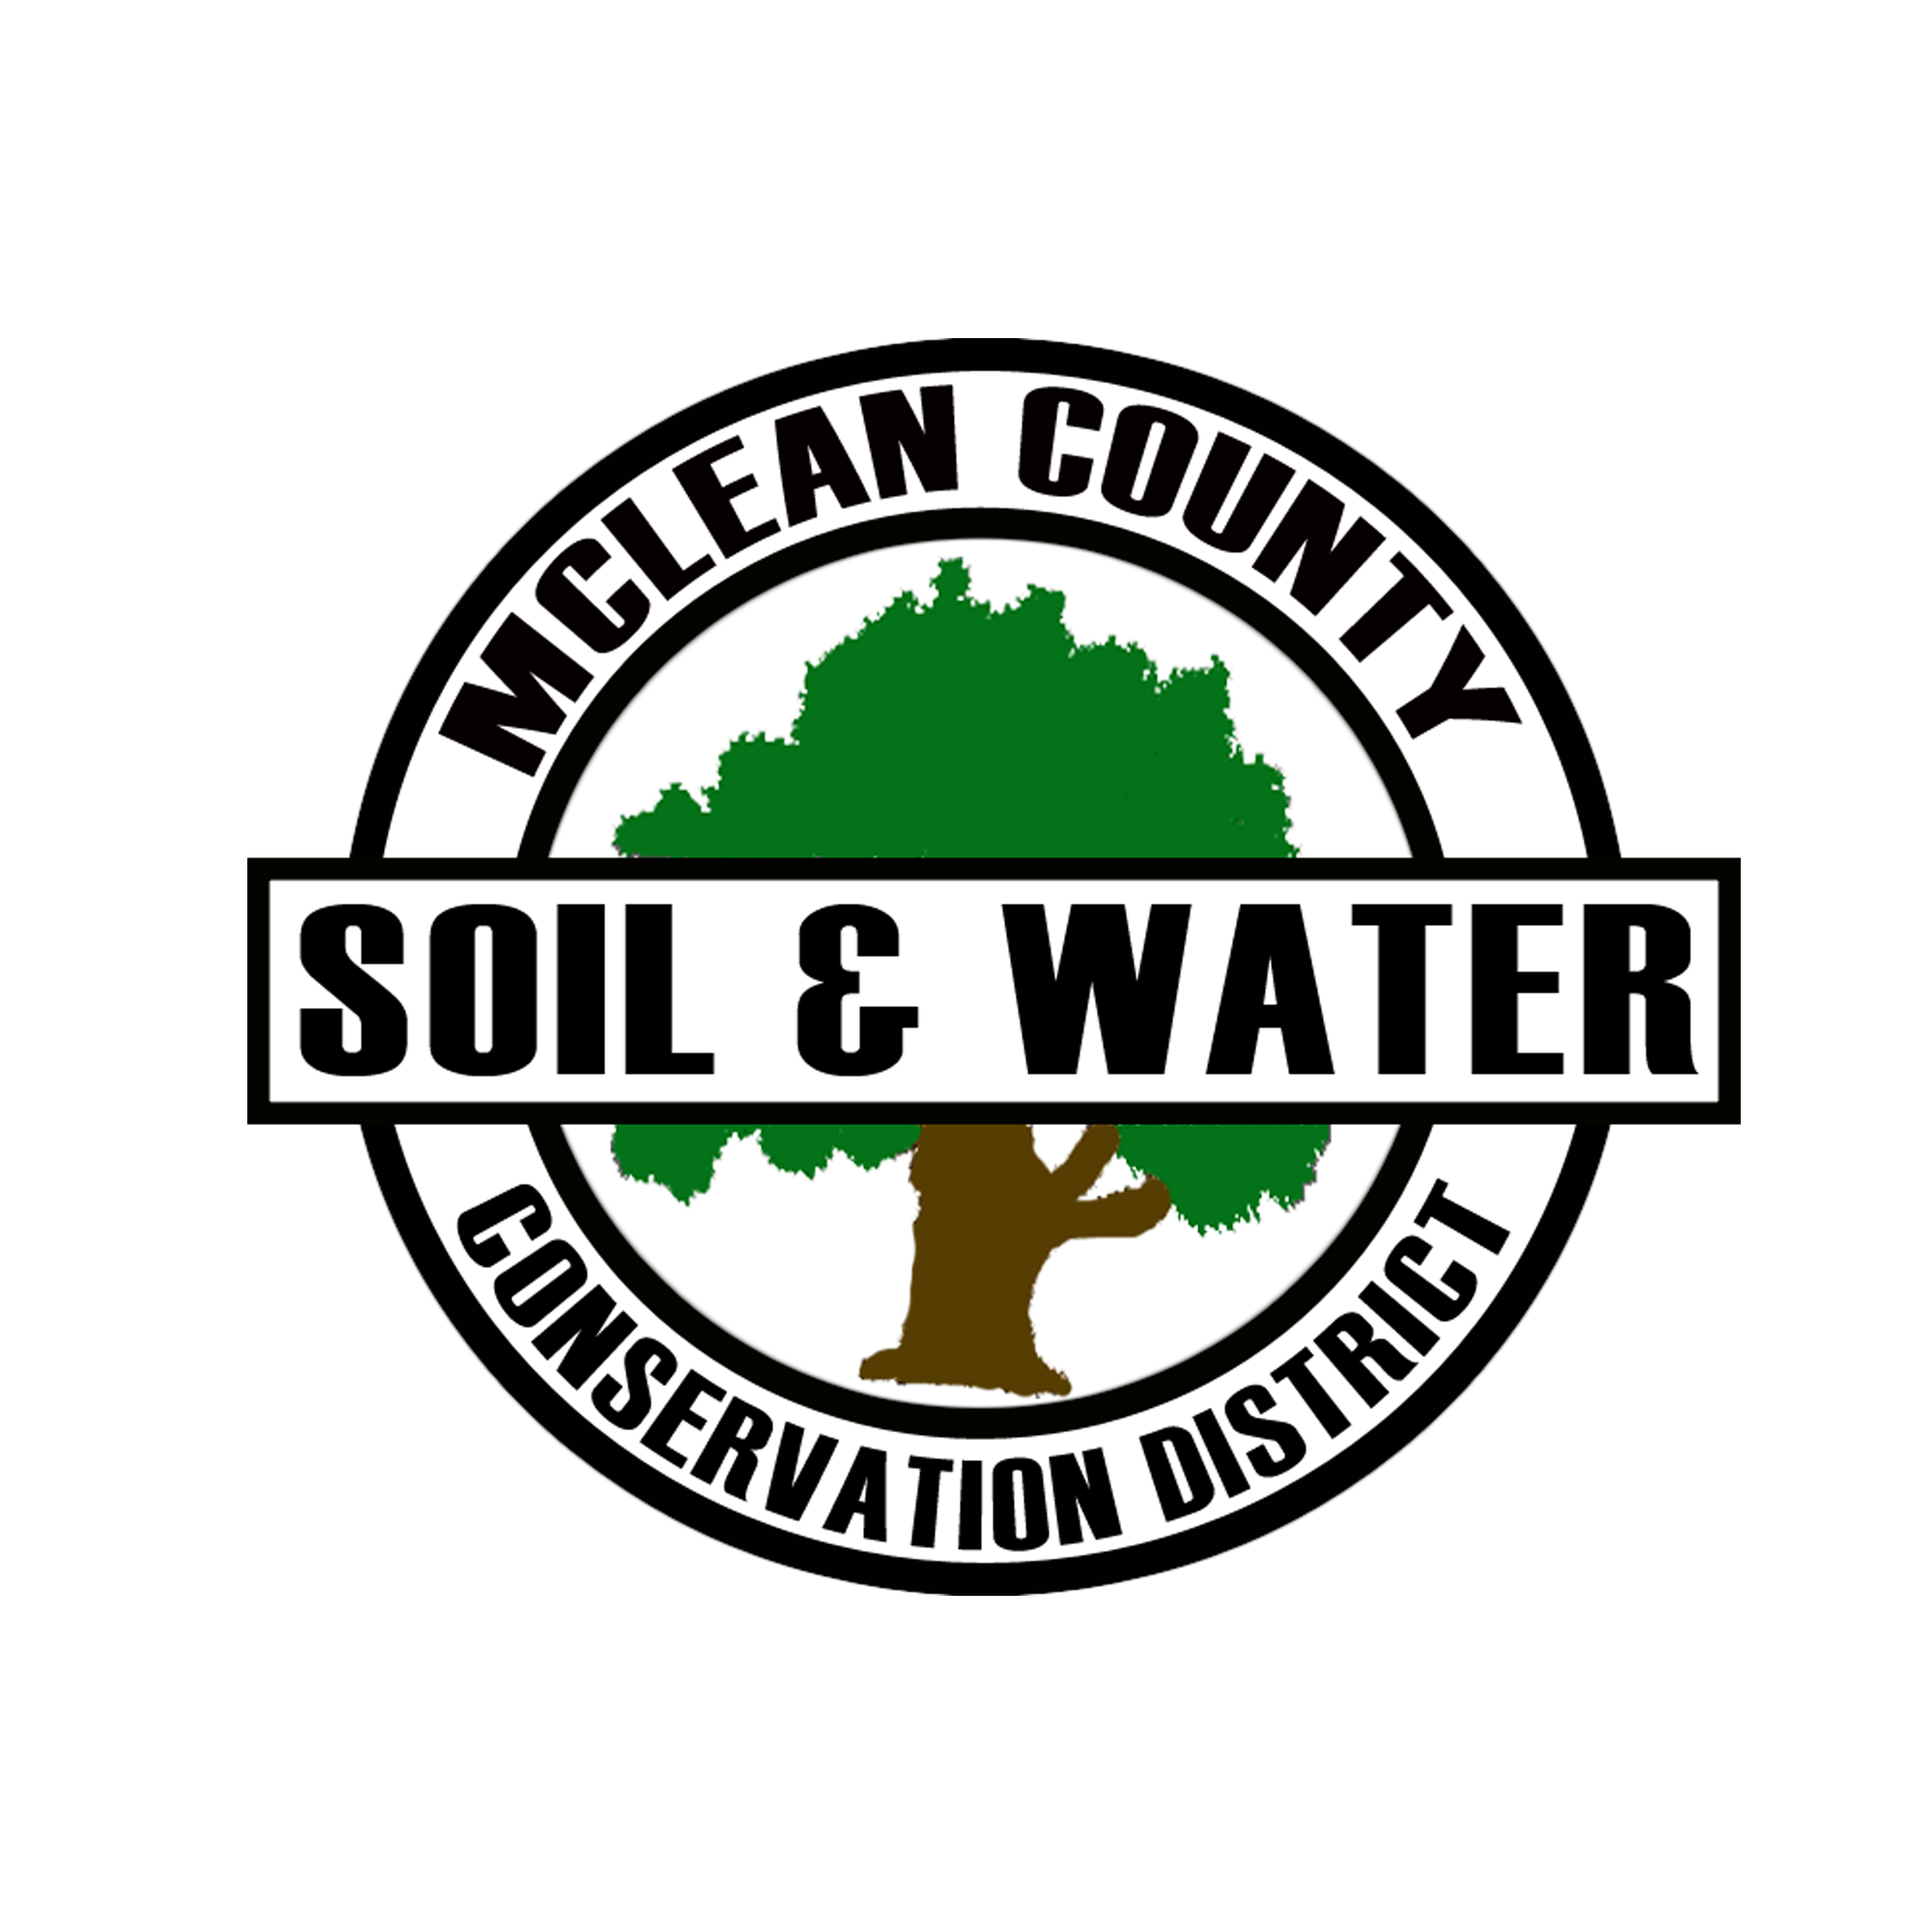 McLean County Soil and Water Conservation District | Board/Staff